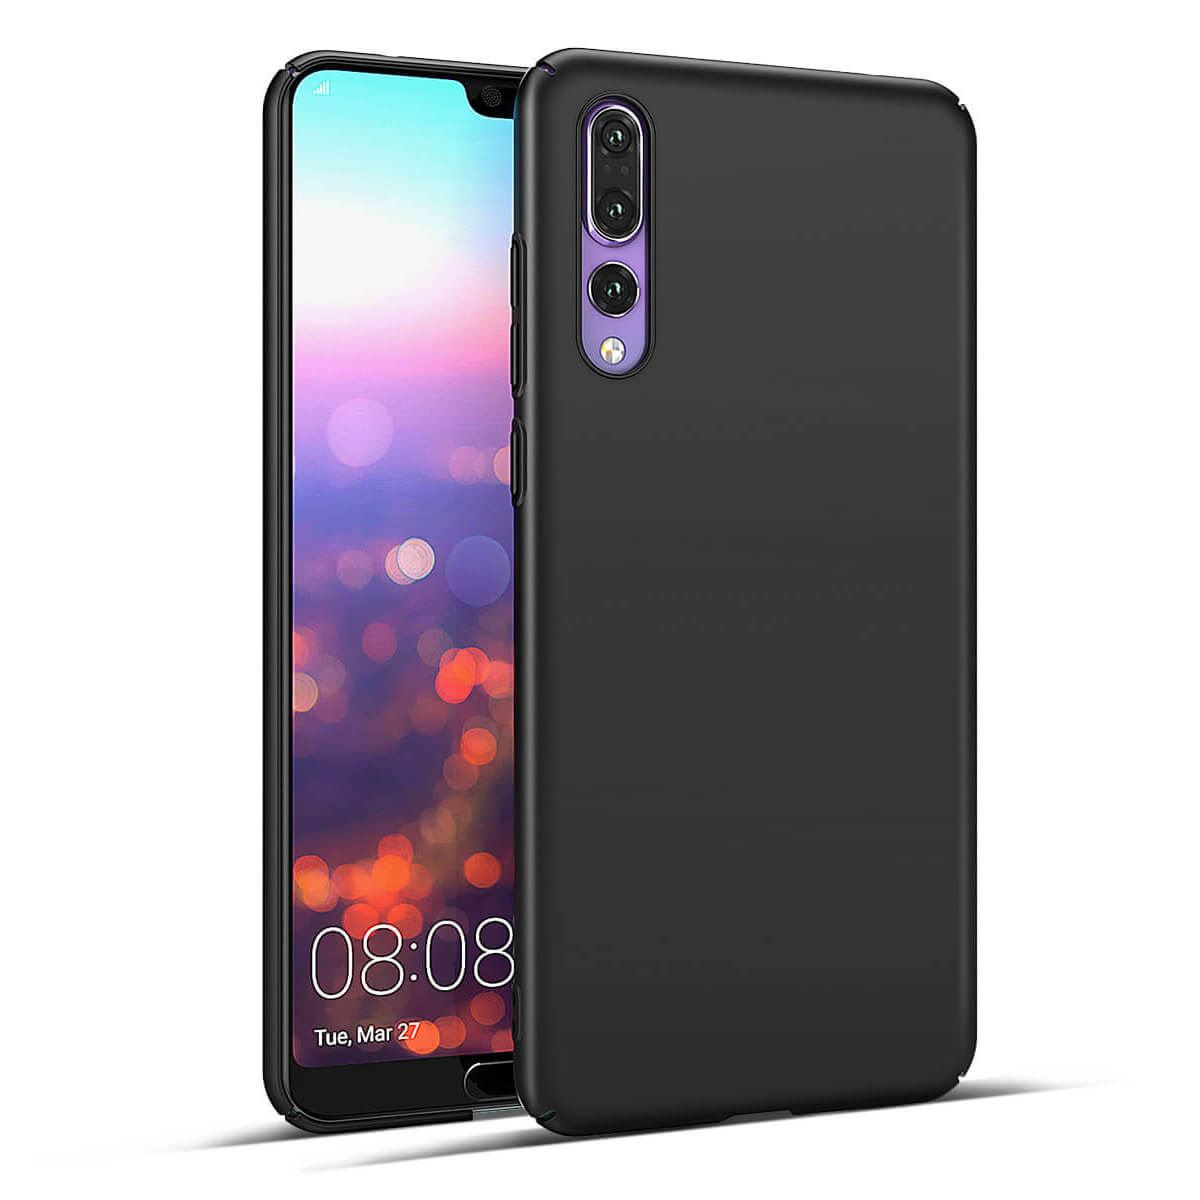 Case-For-Huawei-P20-Pro-P10-P-Smart-Luxury-Protective-Slim-Thin-Hard-Back-Cover thumbnail 6